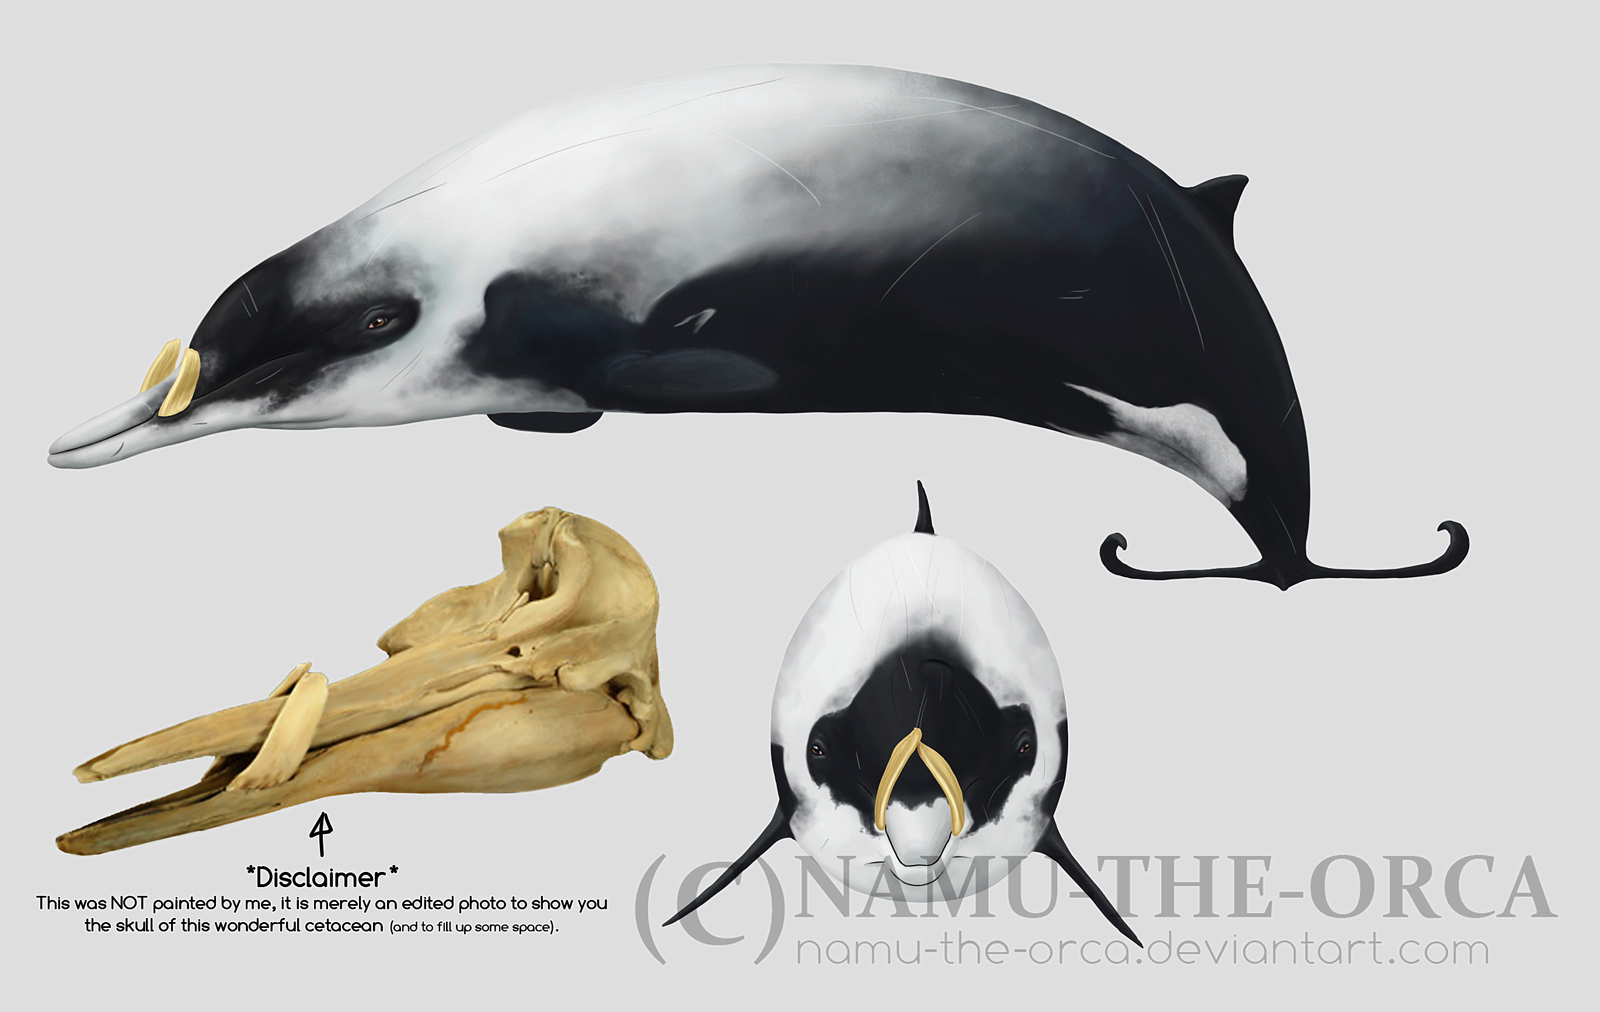 Strap-toothed whale - M. l. by namu-the-orca